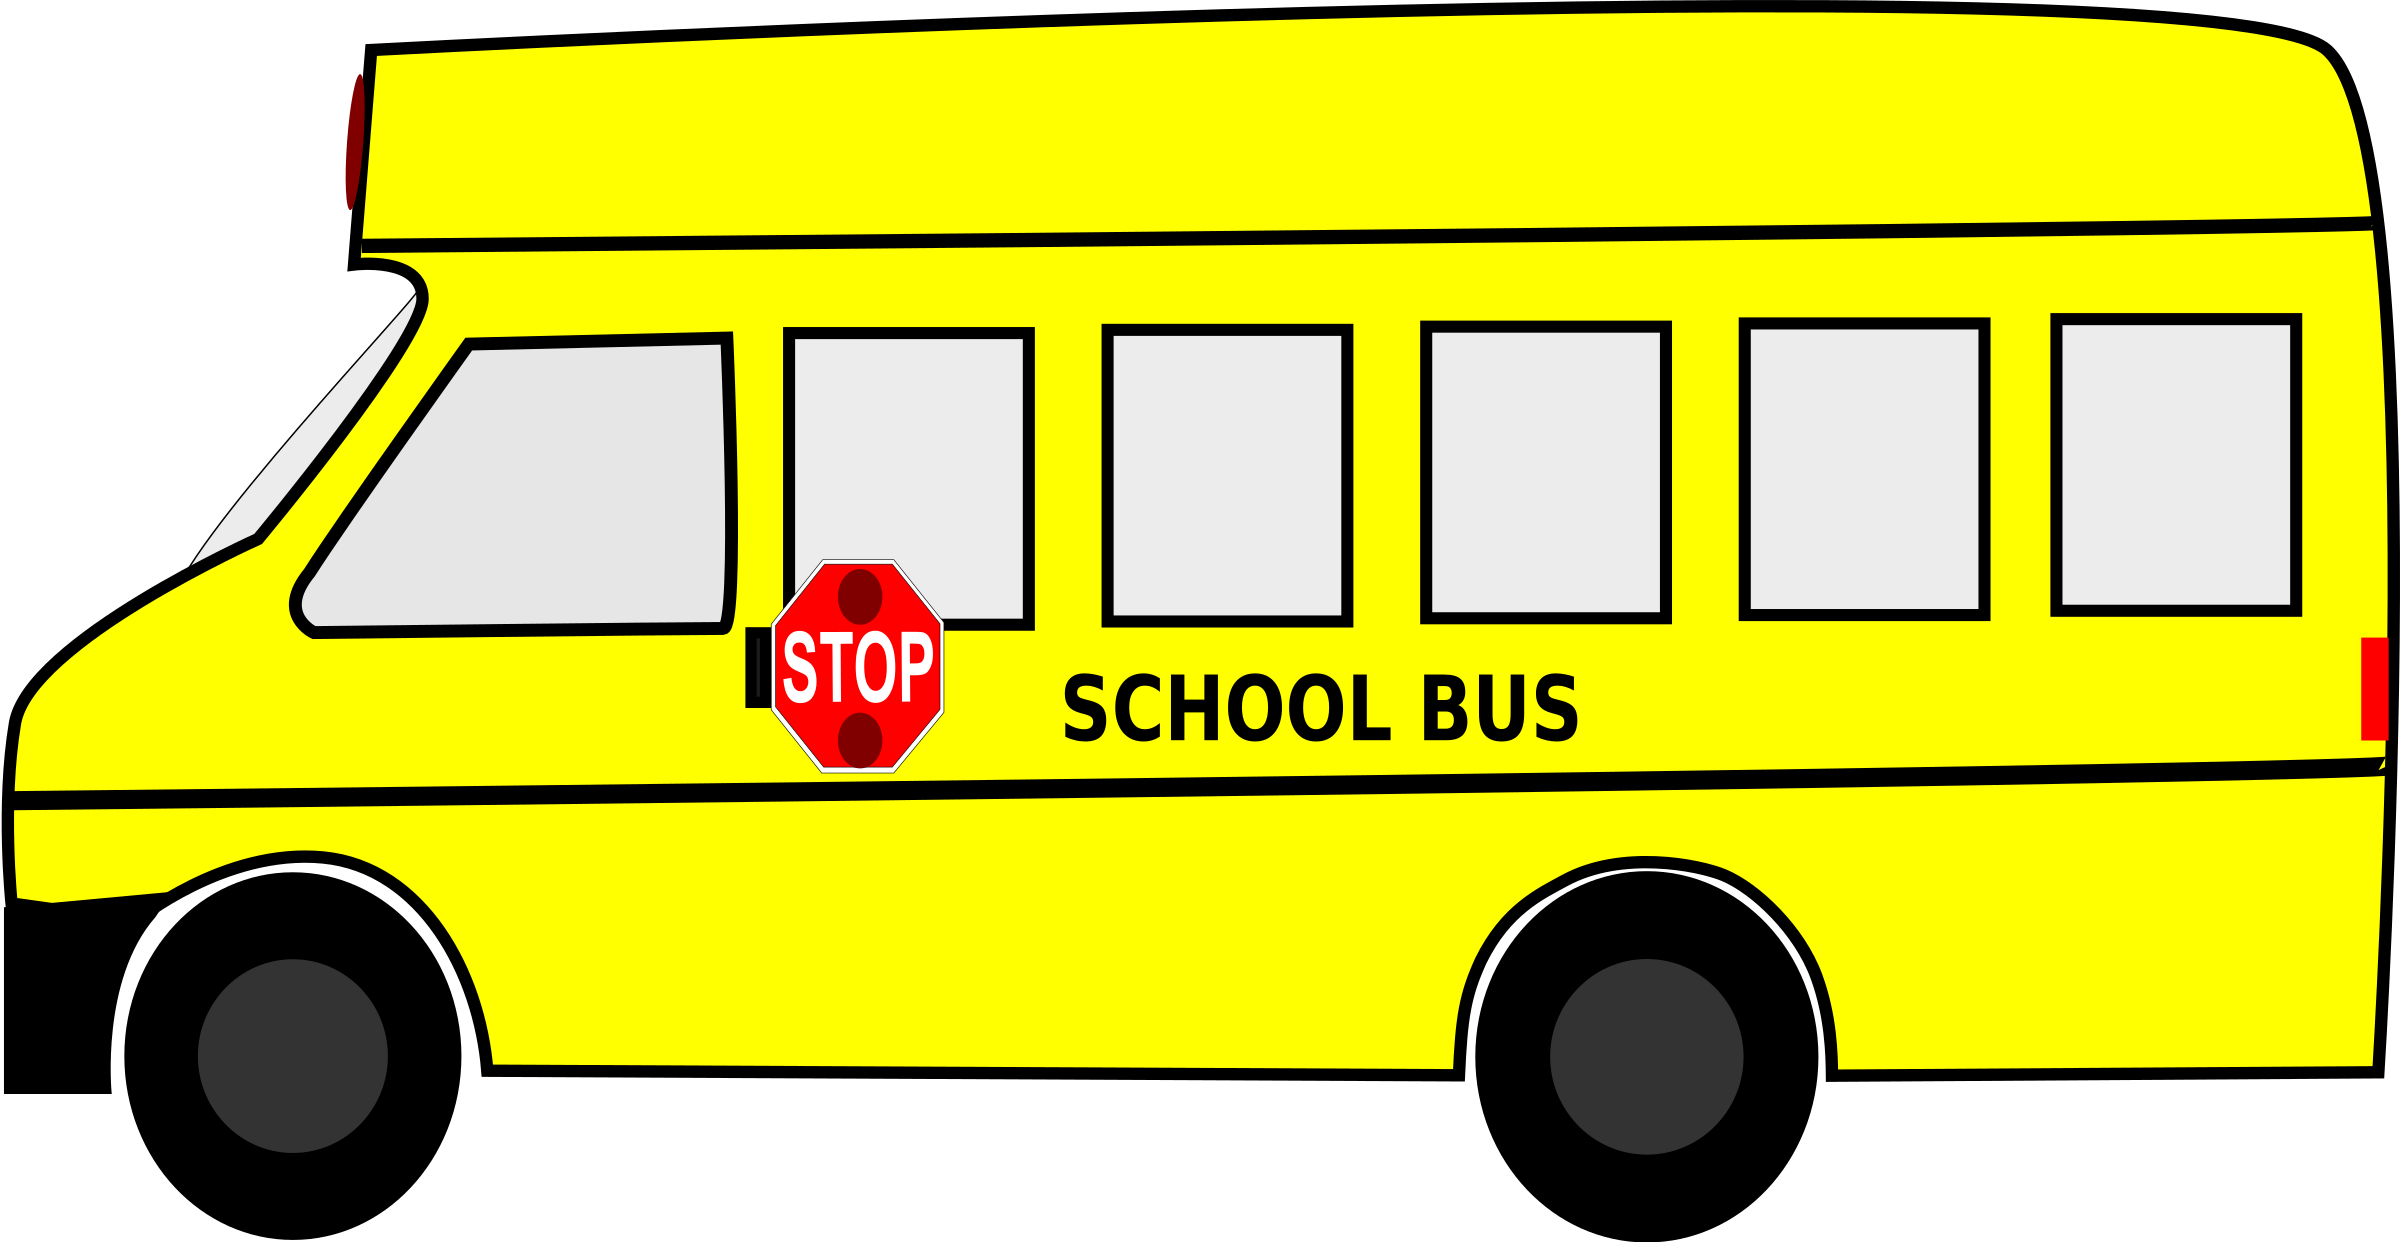 Clipart bus on road. School big image png